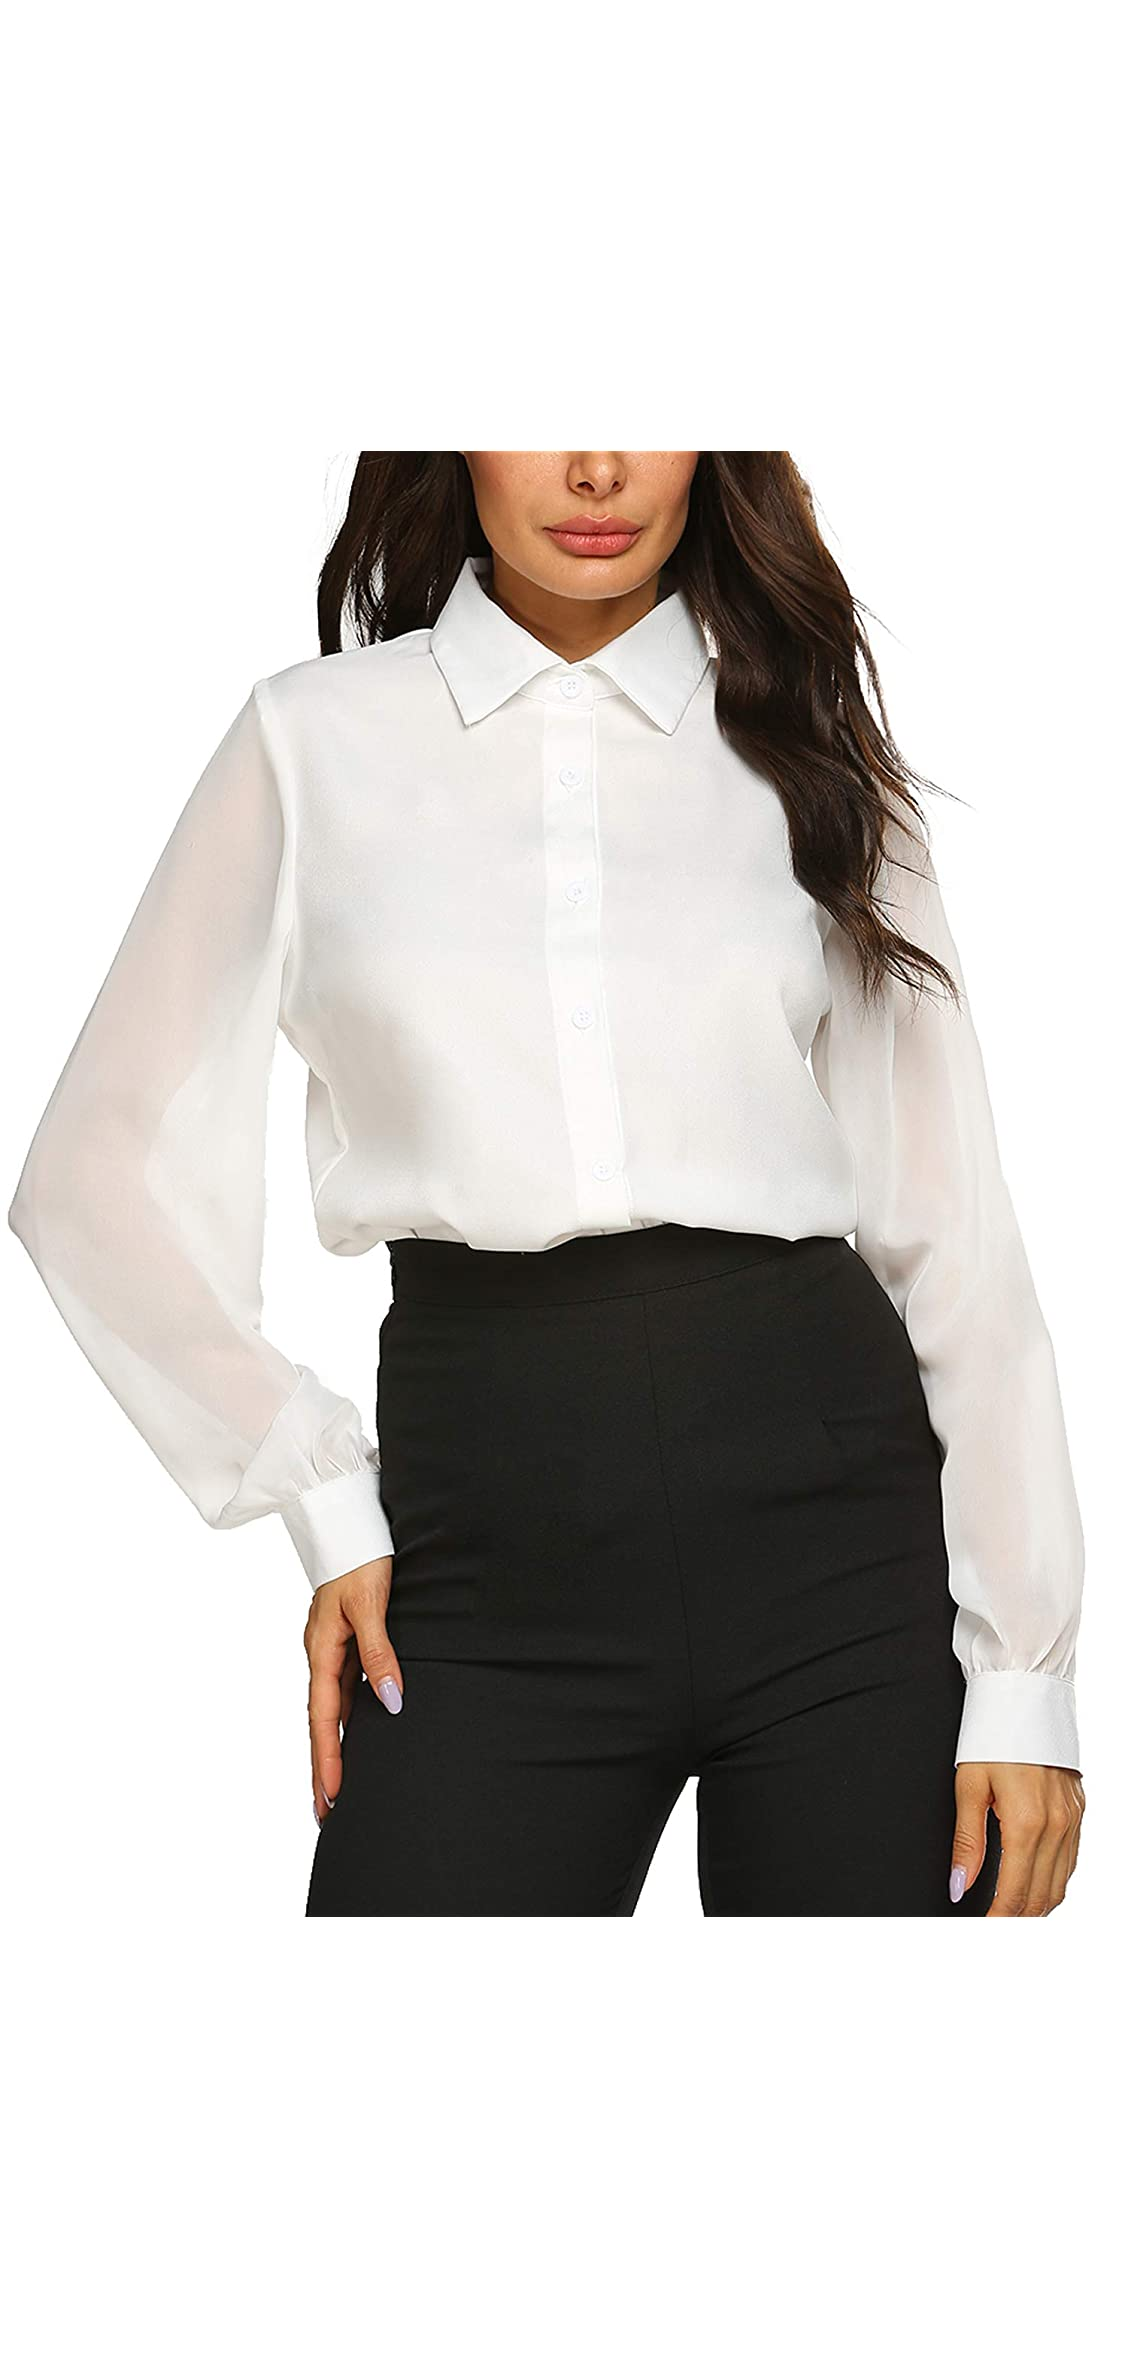 Womens Blouses Bow Tie Neck Long Sleeve Office Work Chiffon Down